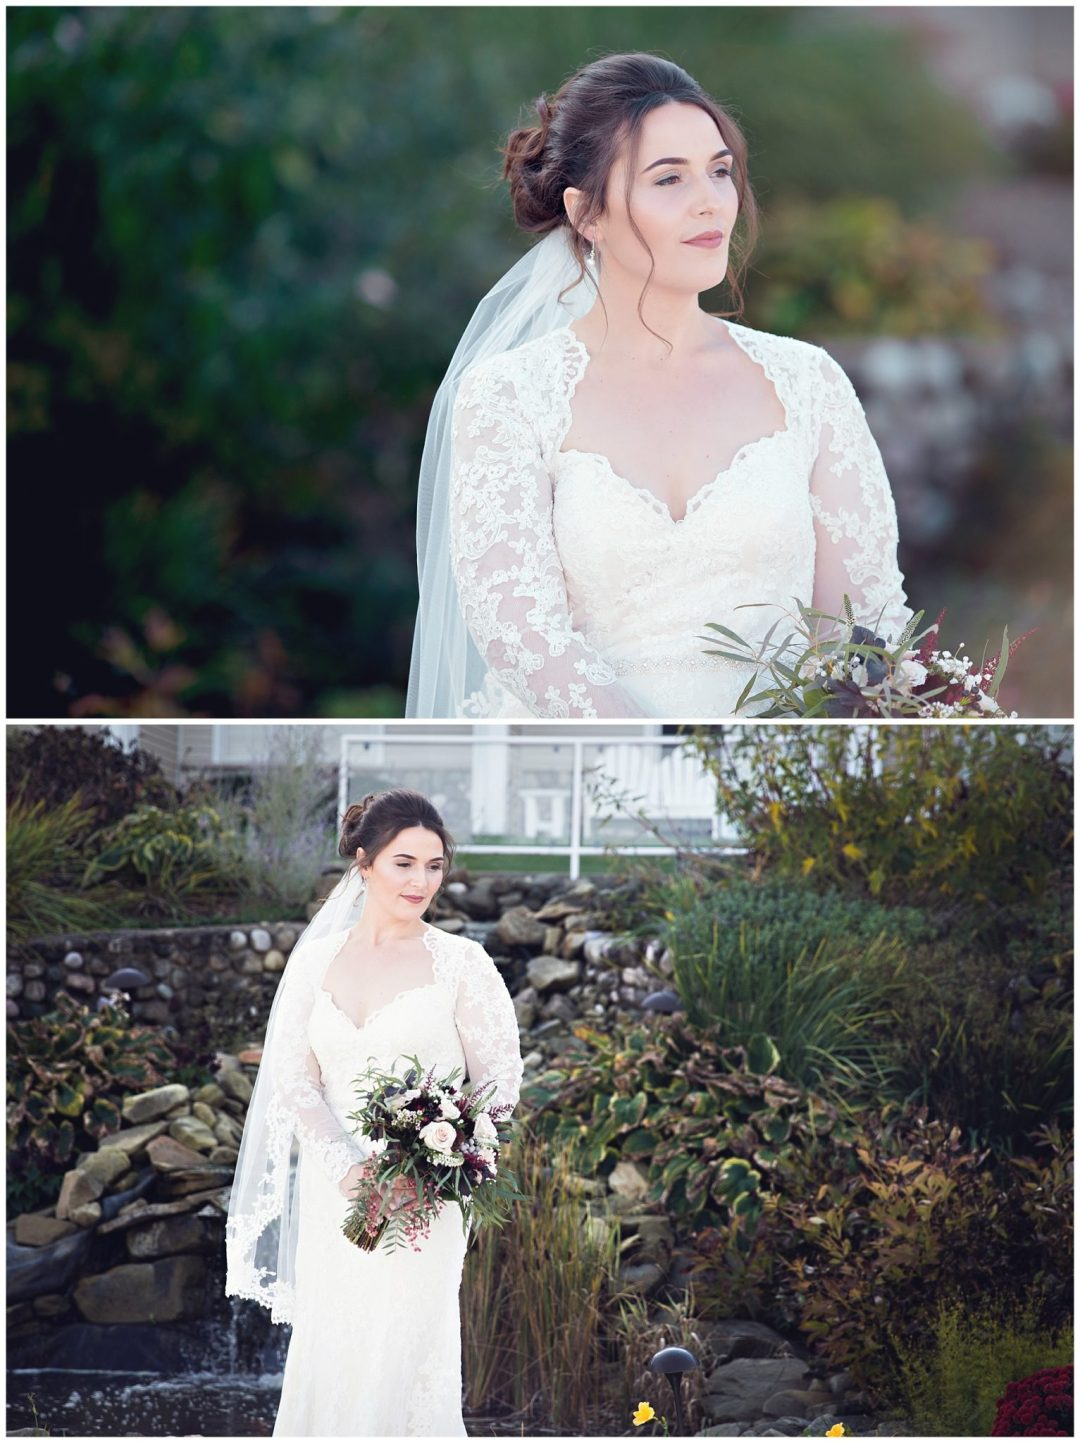 Bride in stunning long sleeve lace dress with fall colors at Bay Pointe Inn on Gun Lake photographed by Melissa Gregersen Photography